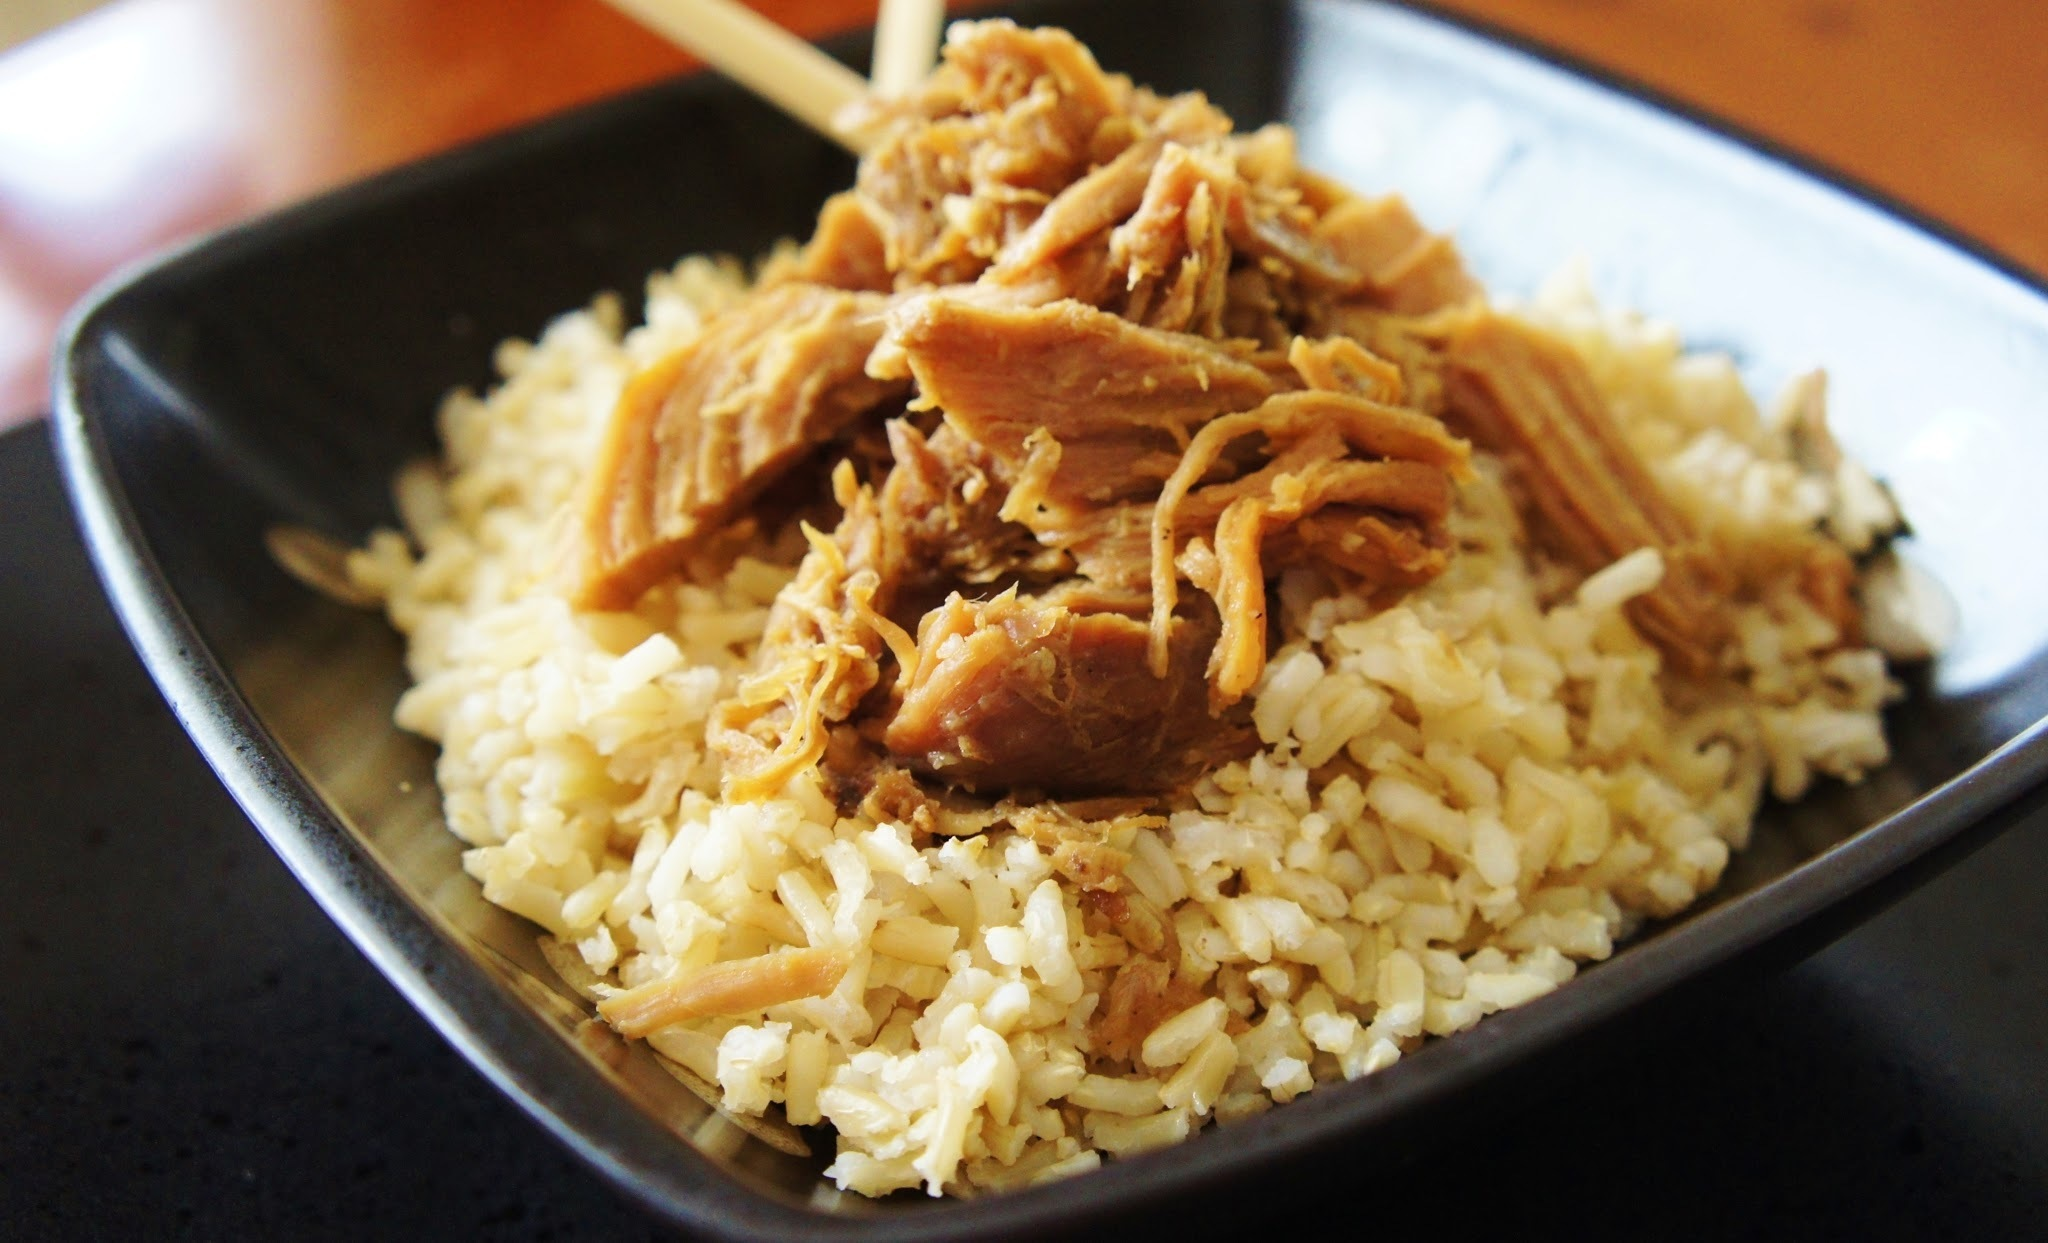 Recipe for Slow Cooker Asian Pulled Pork over Rice